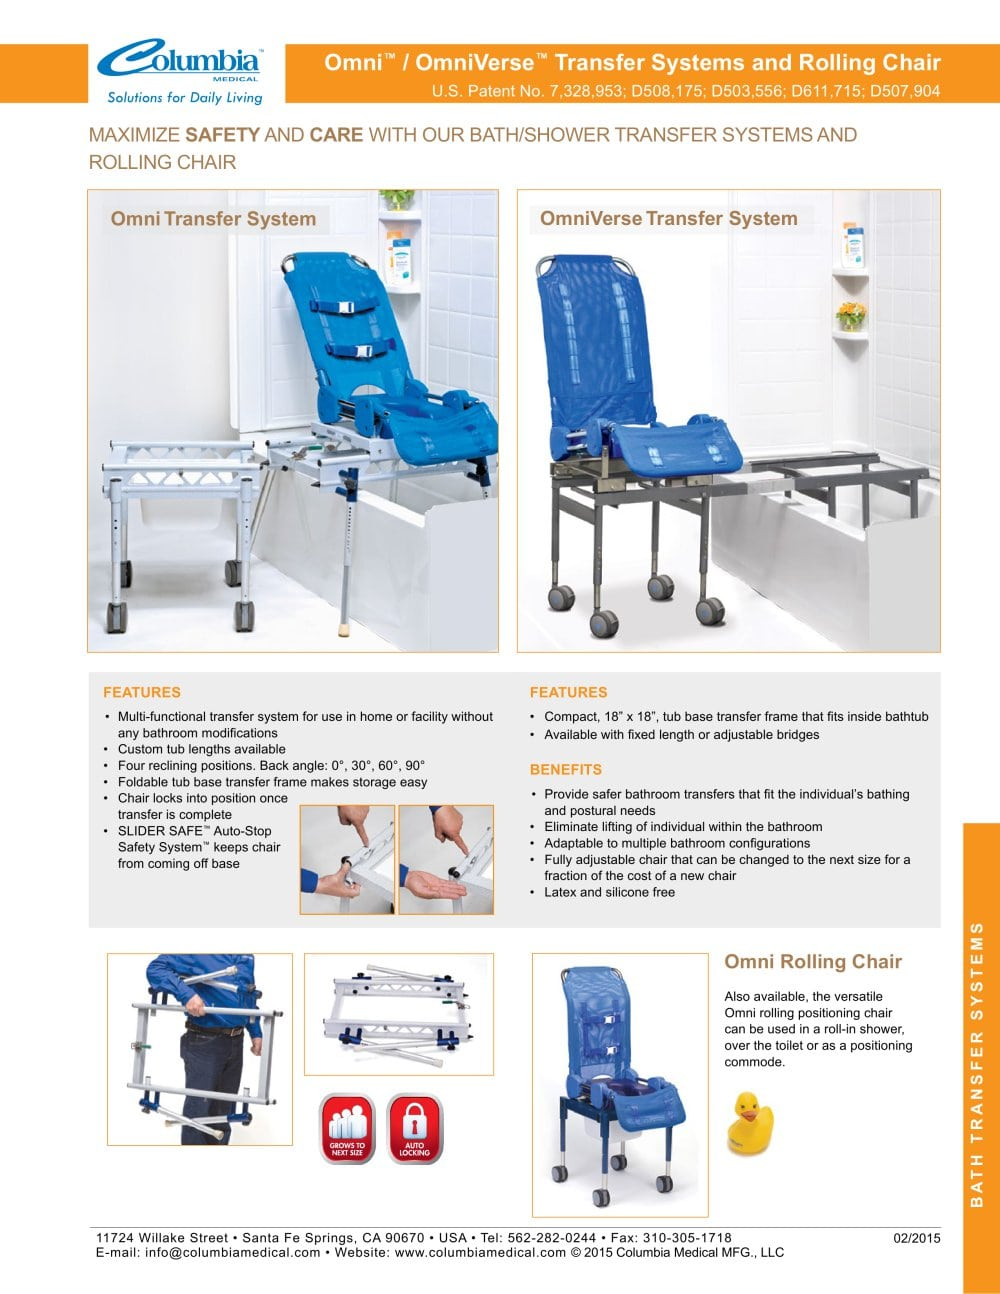 columbia medical bath chair recliner covers for incontinence omni ov inspired pdf catalogs technical documentation 1 2 pages